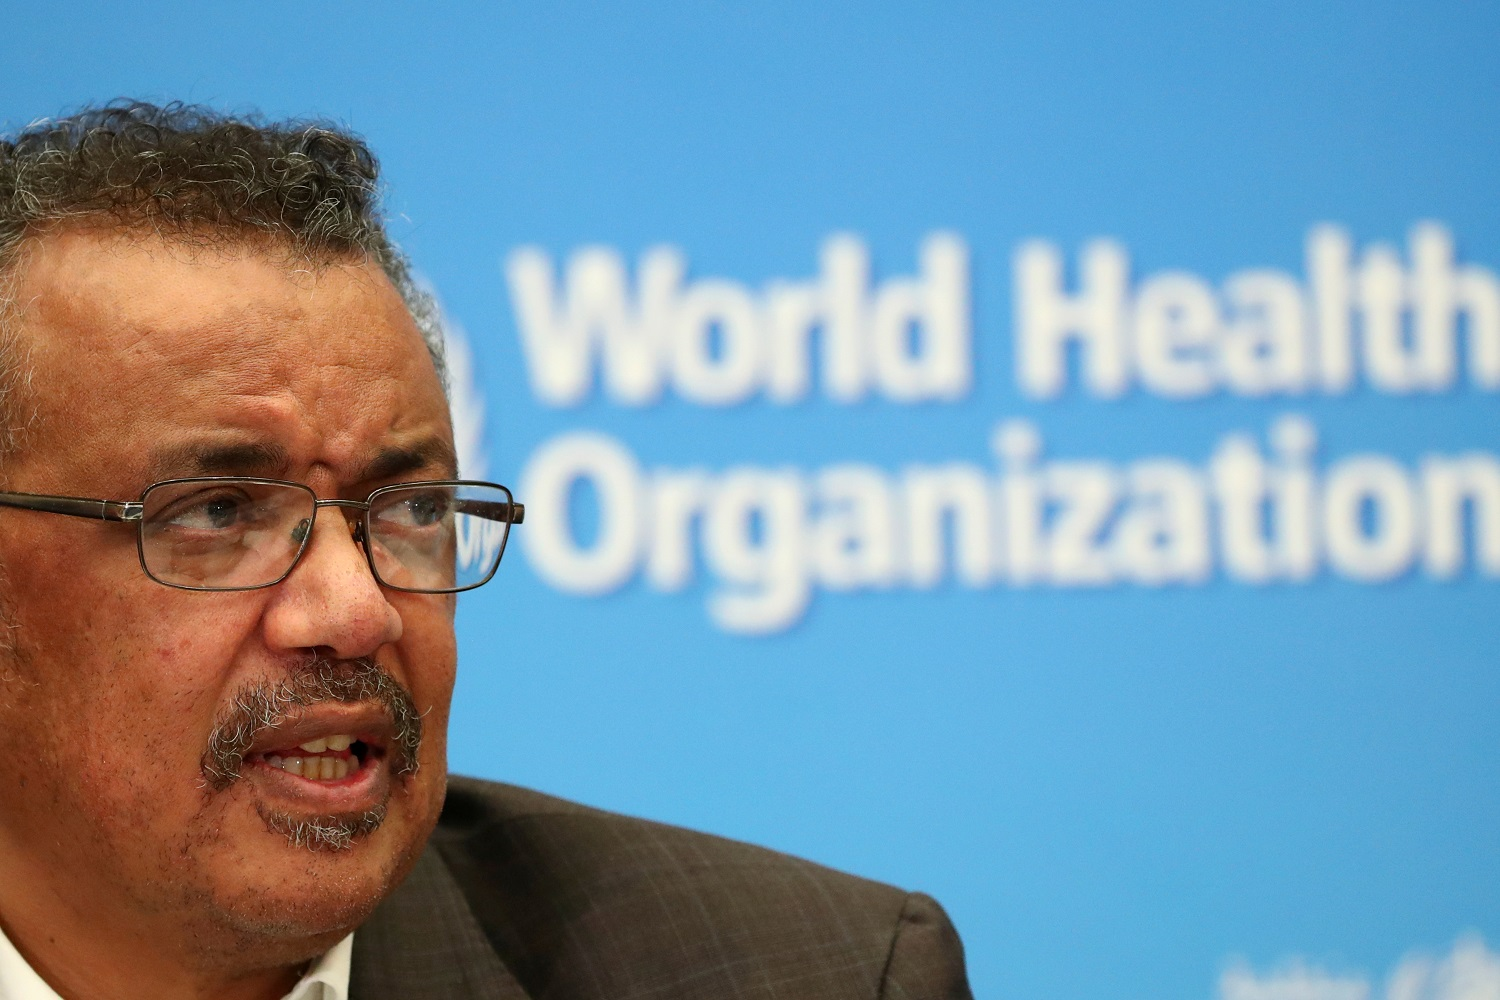 FILE PHOTO: Director-General of the World Health Organization (WHO) Tedros Adhanom Ghebreyesus speaks during a news conference after a meeting of the Emergency Committee on the novel coronavirus (2019-nCoV) in Geneva, Switzerland January 30, 2020. REUTERS/Denis Balibouse/File Photo